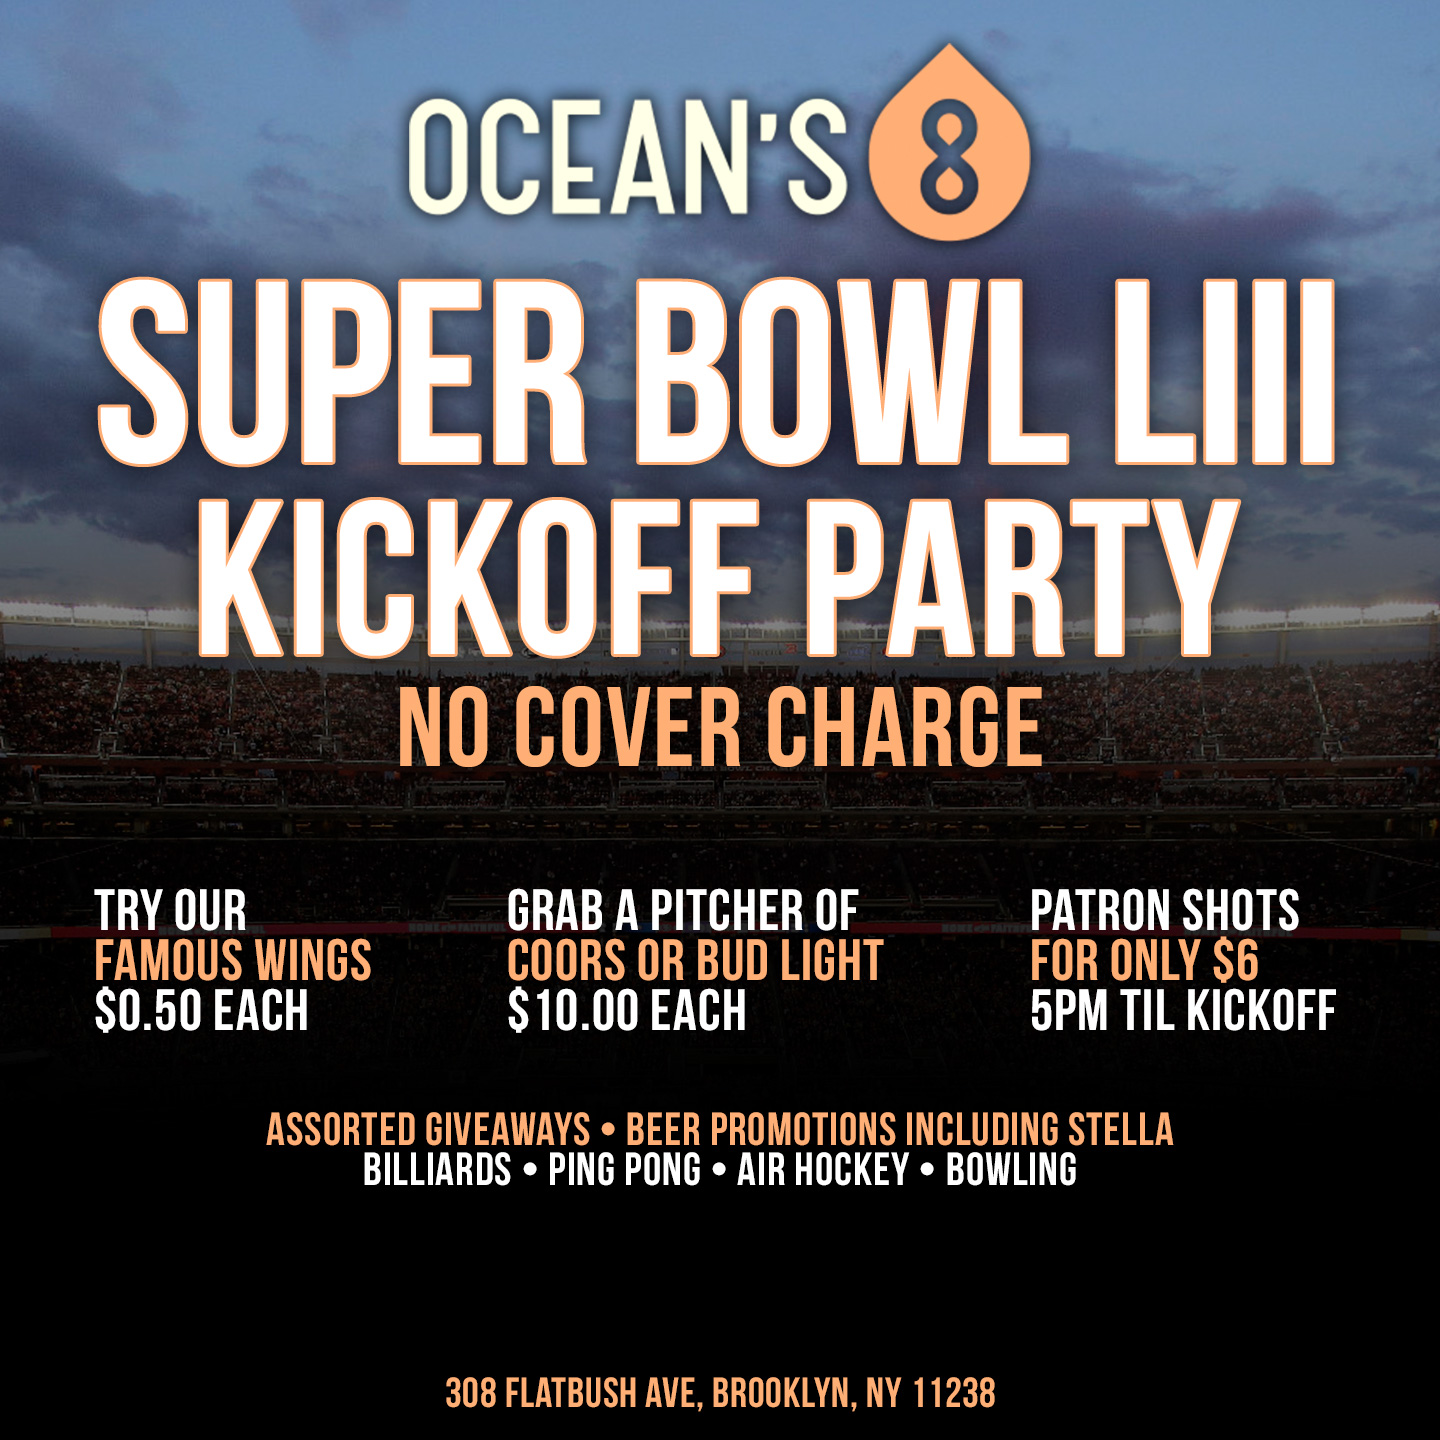 Ocean's 8 Super Bowl LIII Kickoff Party